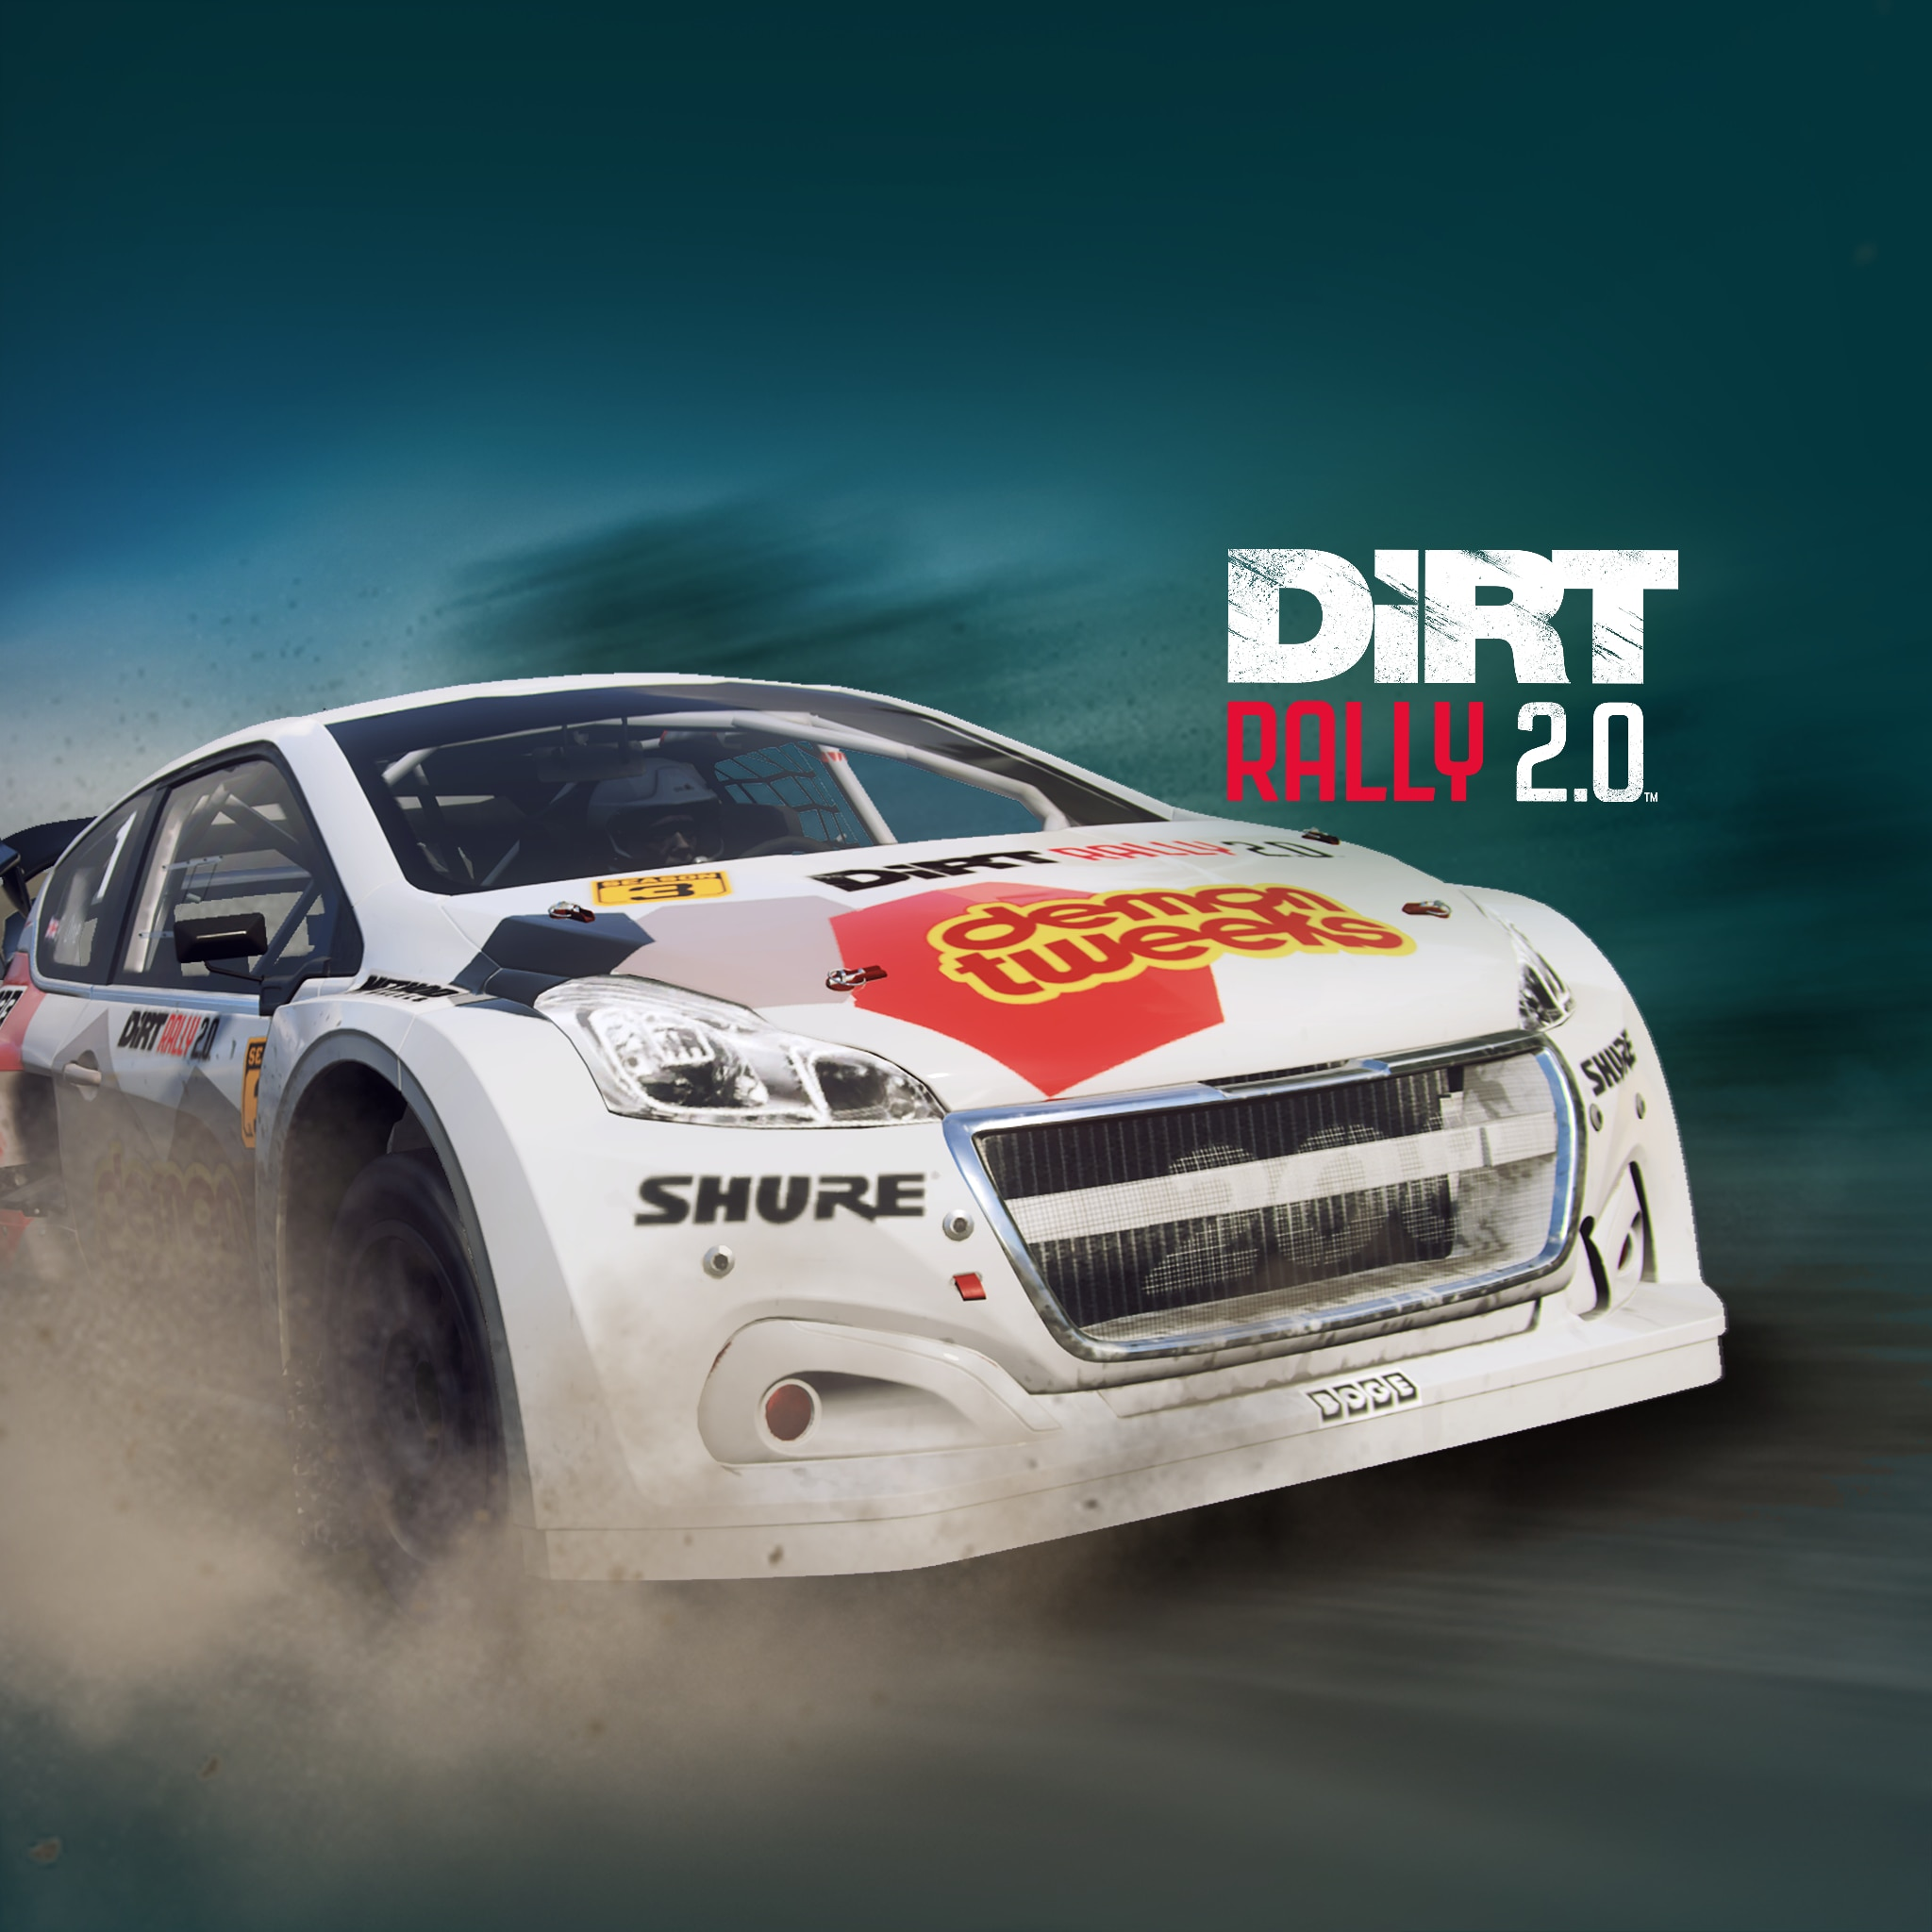 DiRT Rally 2.0 - Season 3 – Stage 2 Liveries